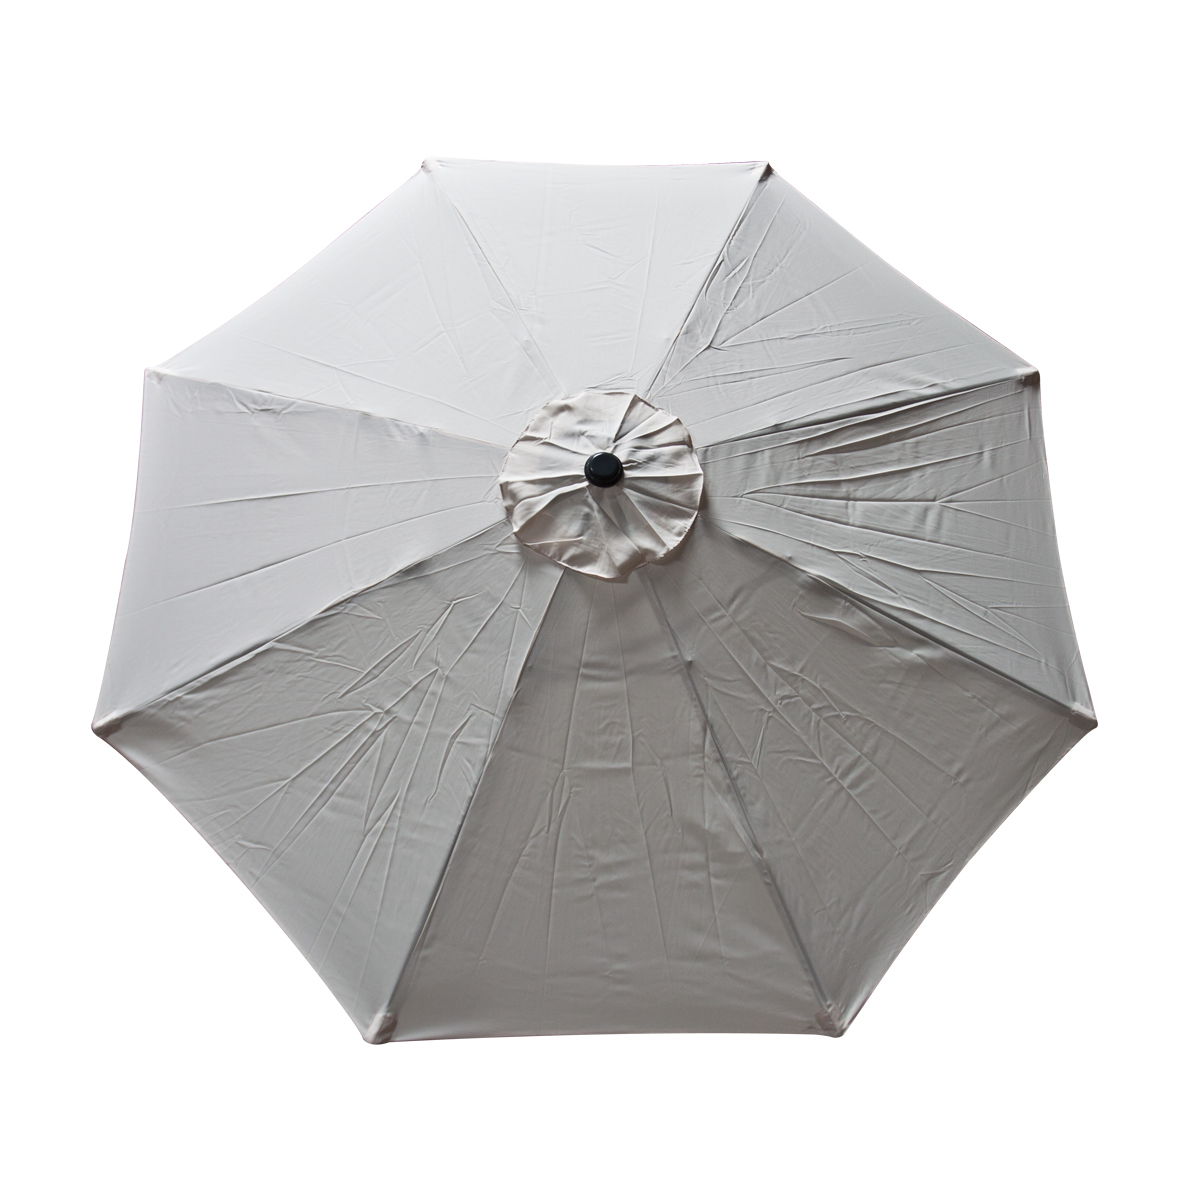 New umbrella replacement cover canopy 9 ft feet 8 ribs top for Canopy umbrella